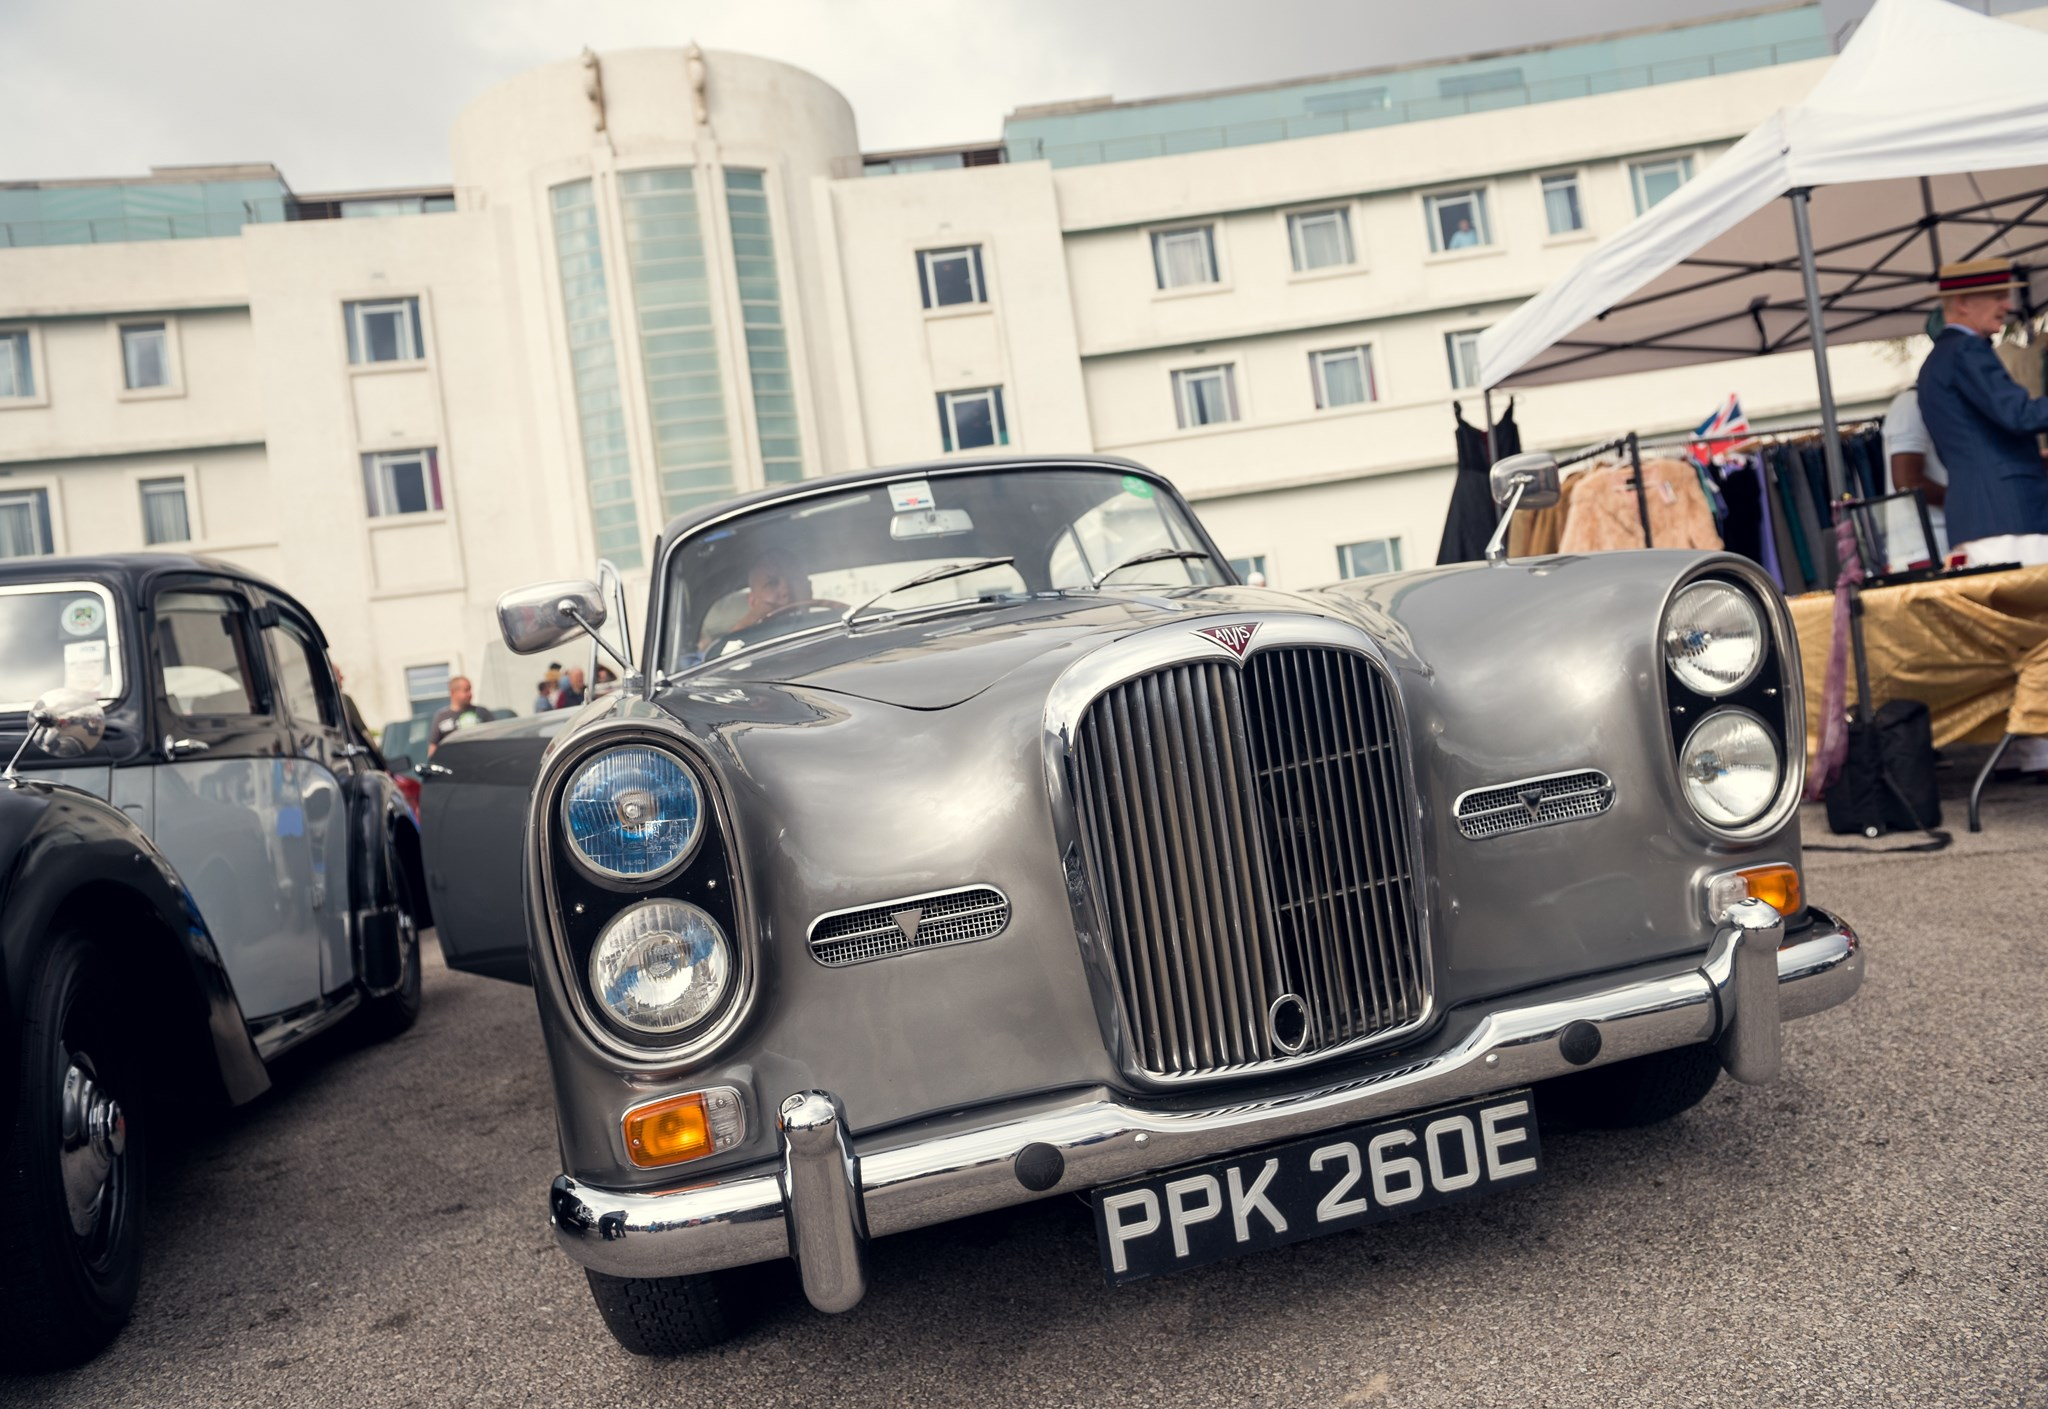 Vintage car at the Midland Hotel event, Vintage by the sea